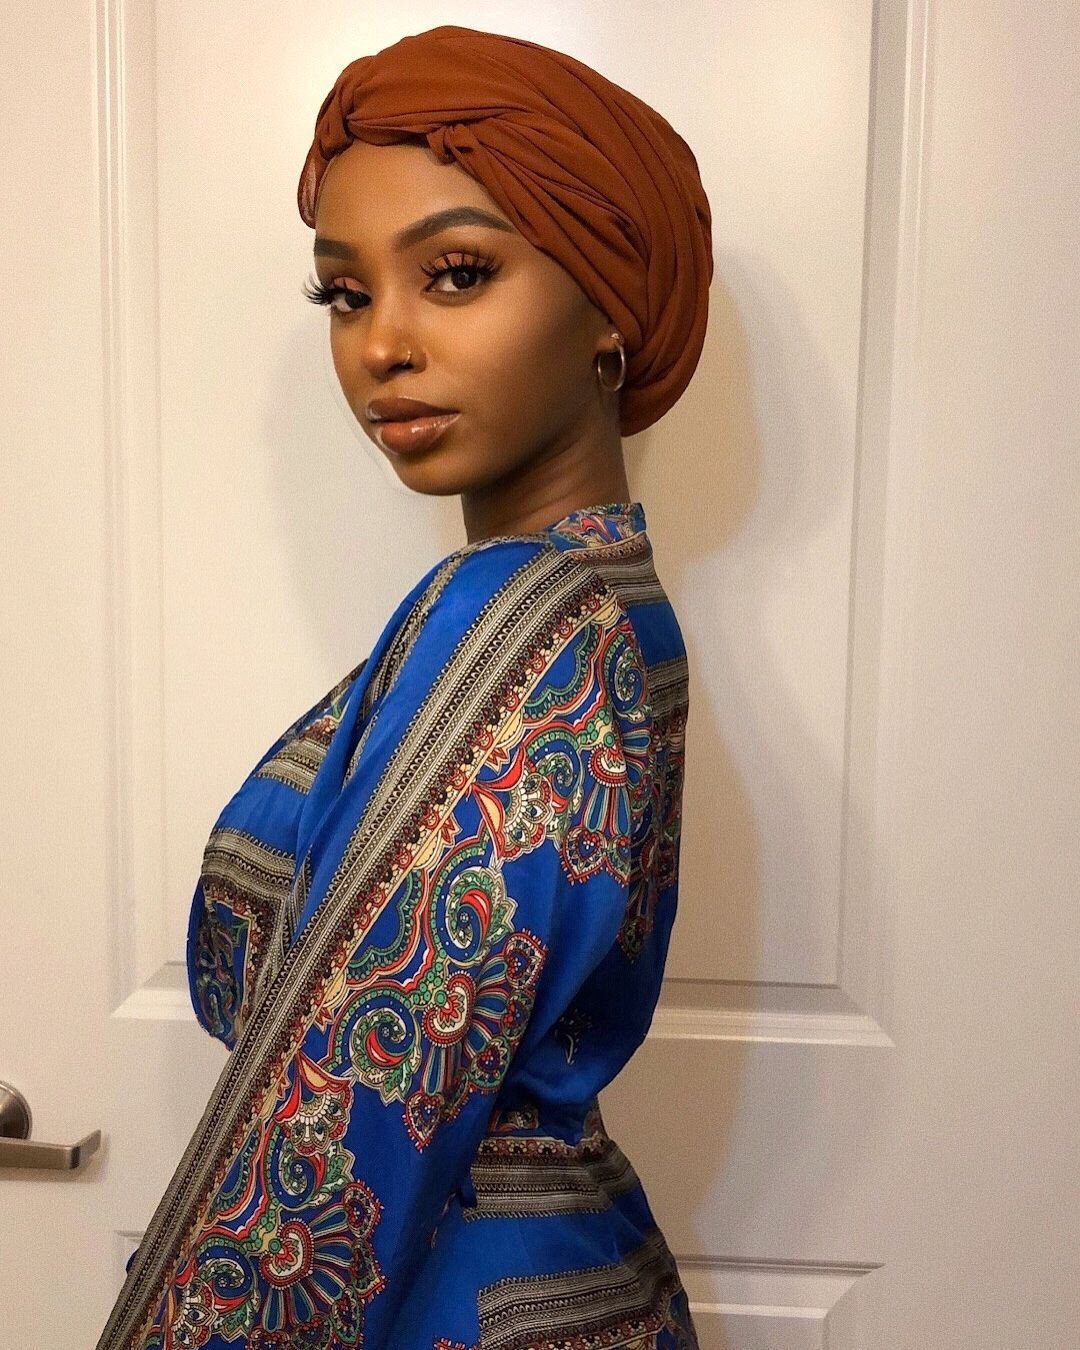 21 Headwrap Styles to Inspire Your Look | Headwraps #headscarfstyles